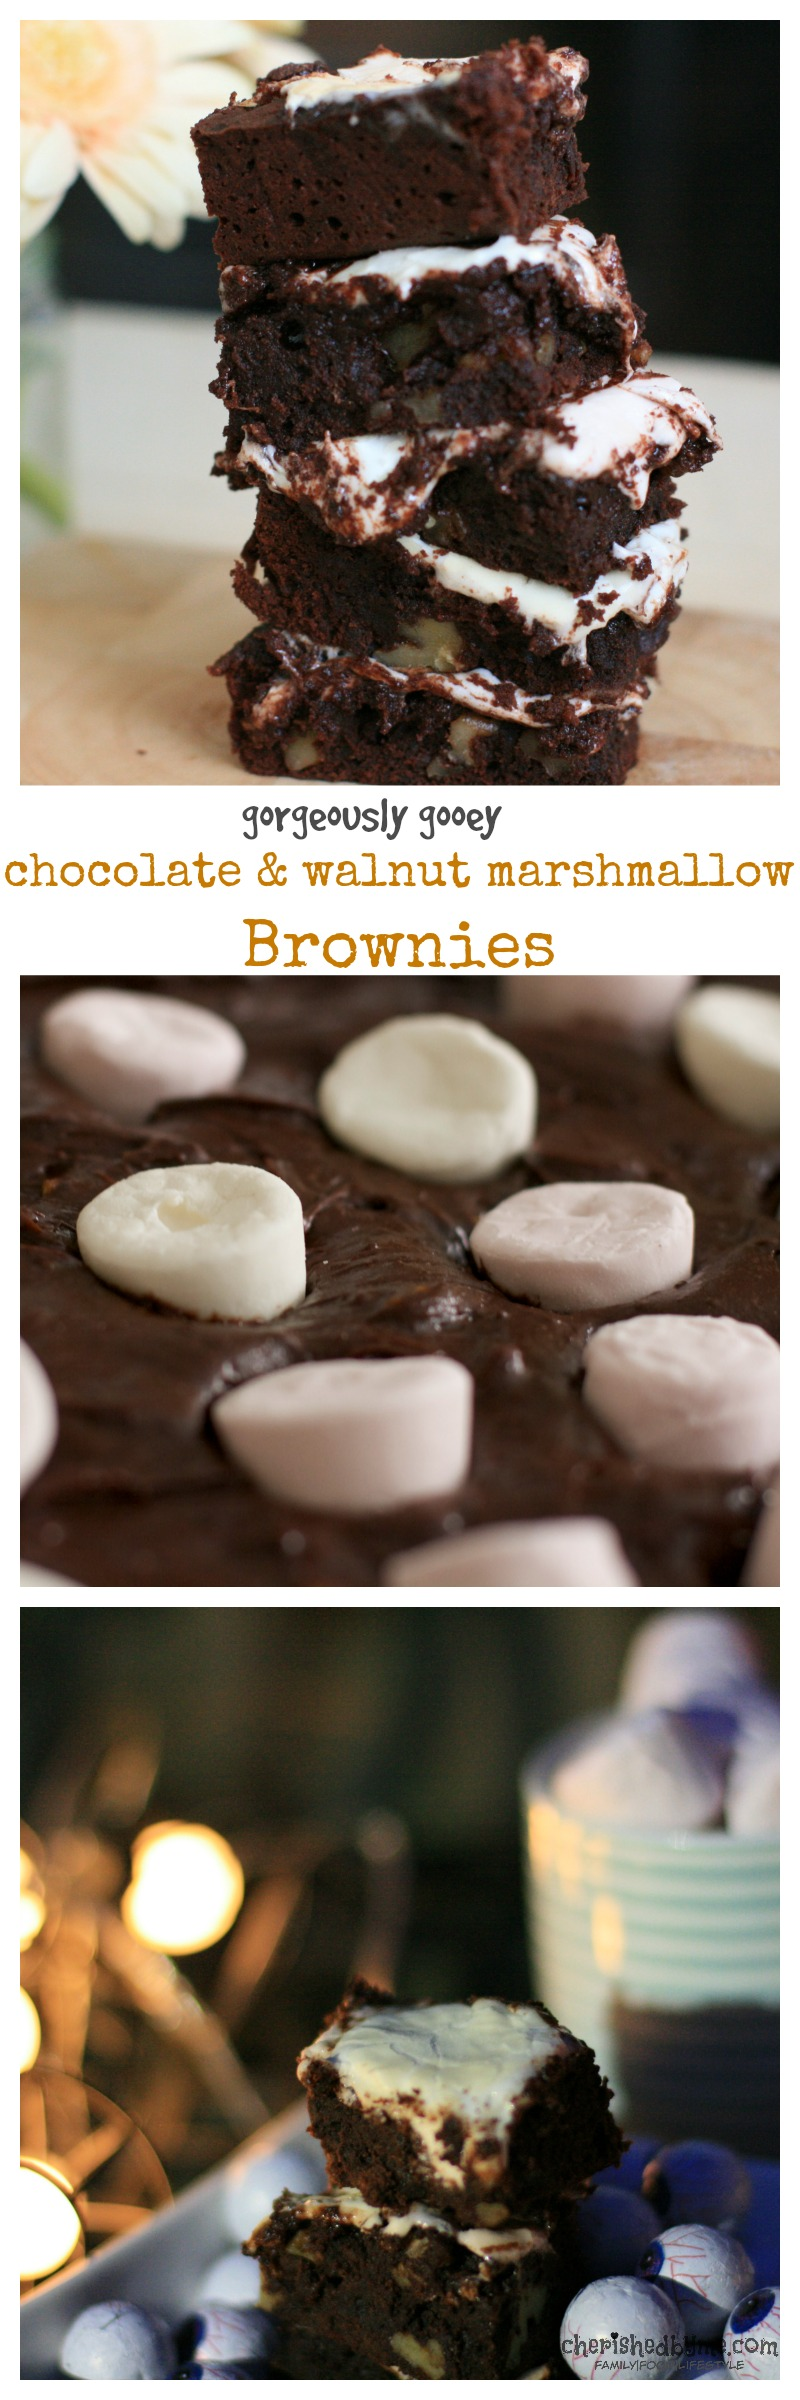 A gorgeously gooey recipe for decadent chocolate & walnut marshmallow brownies. Mmmm